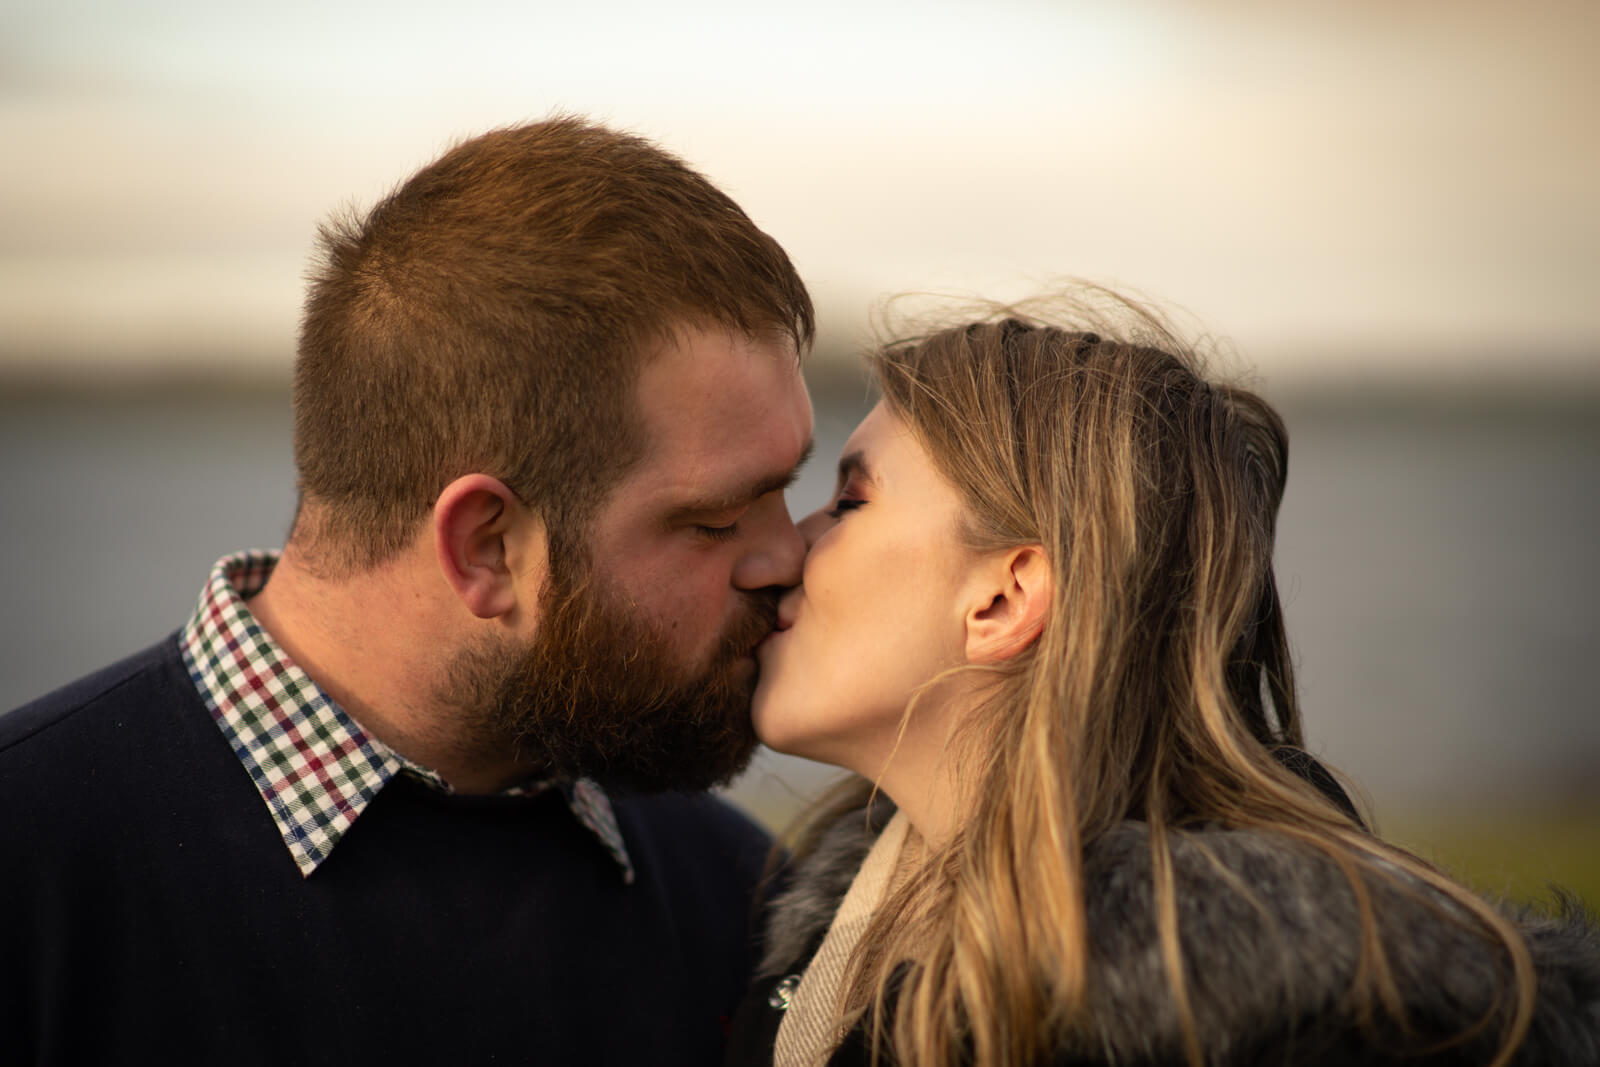 Doodah Photography. Young engaged couple kiss under a winter sky